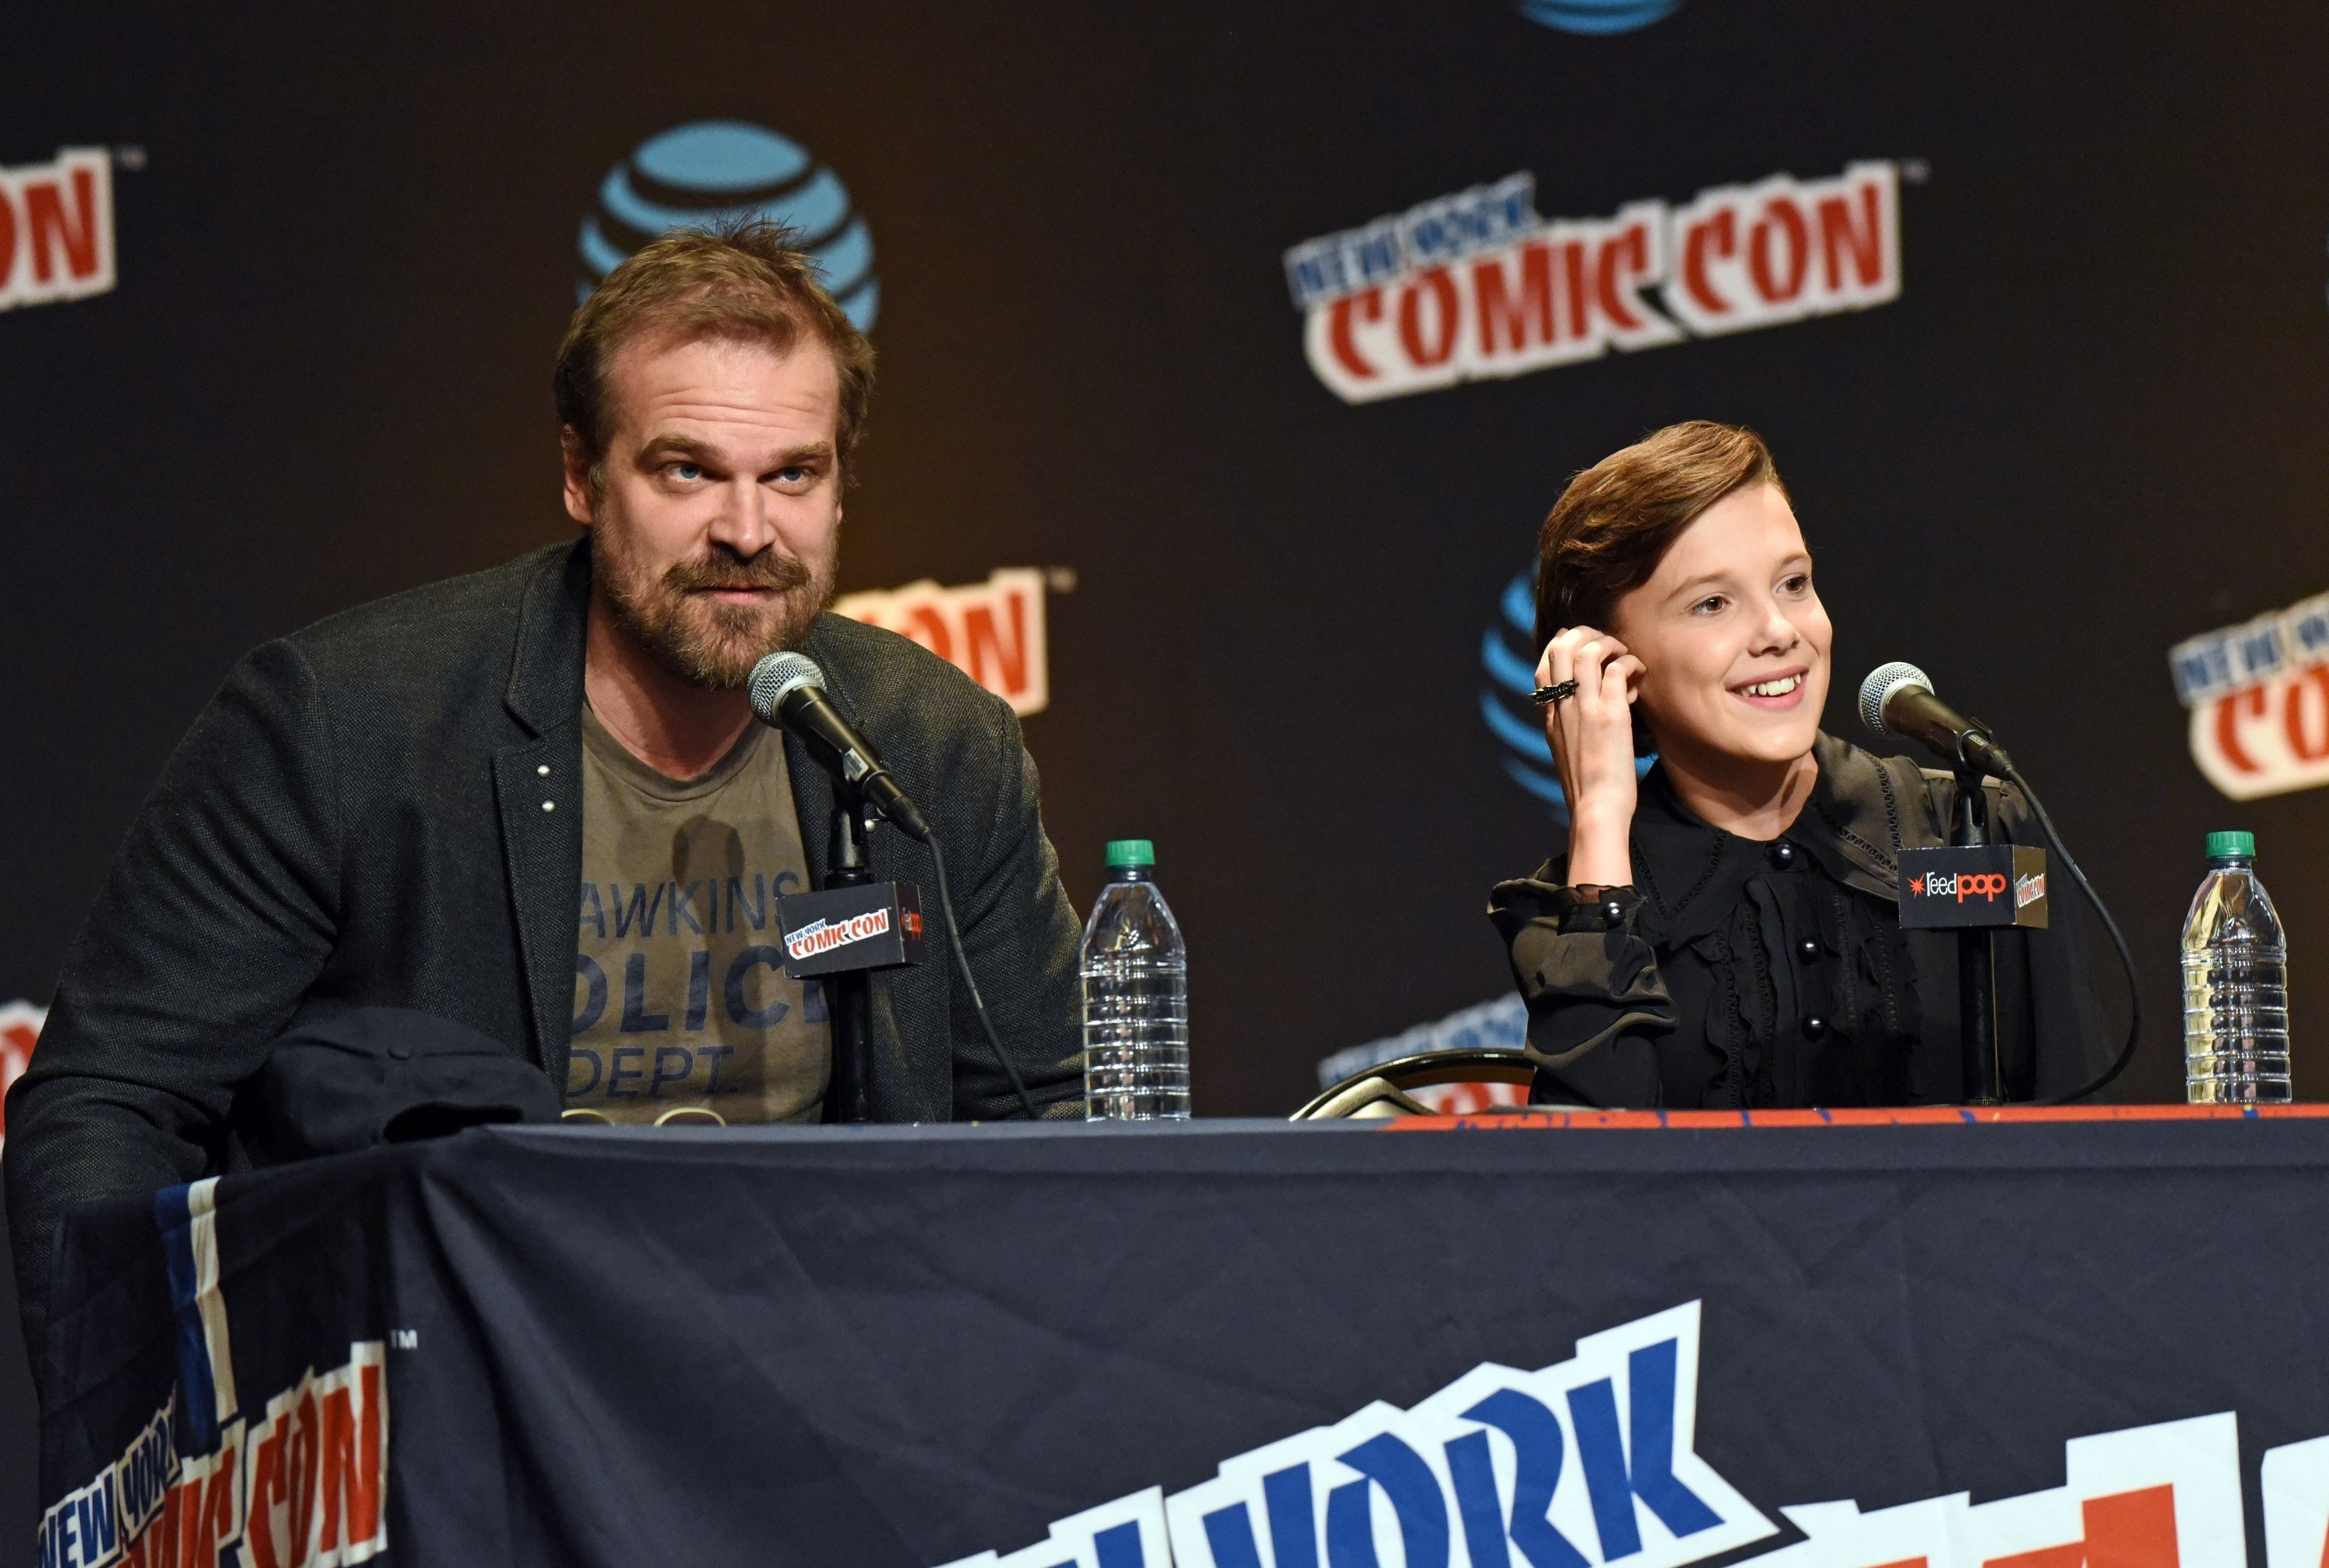 Harbour and Brown at the Comic Con Stranger Things panel